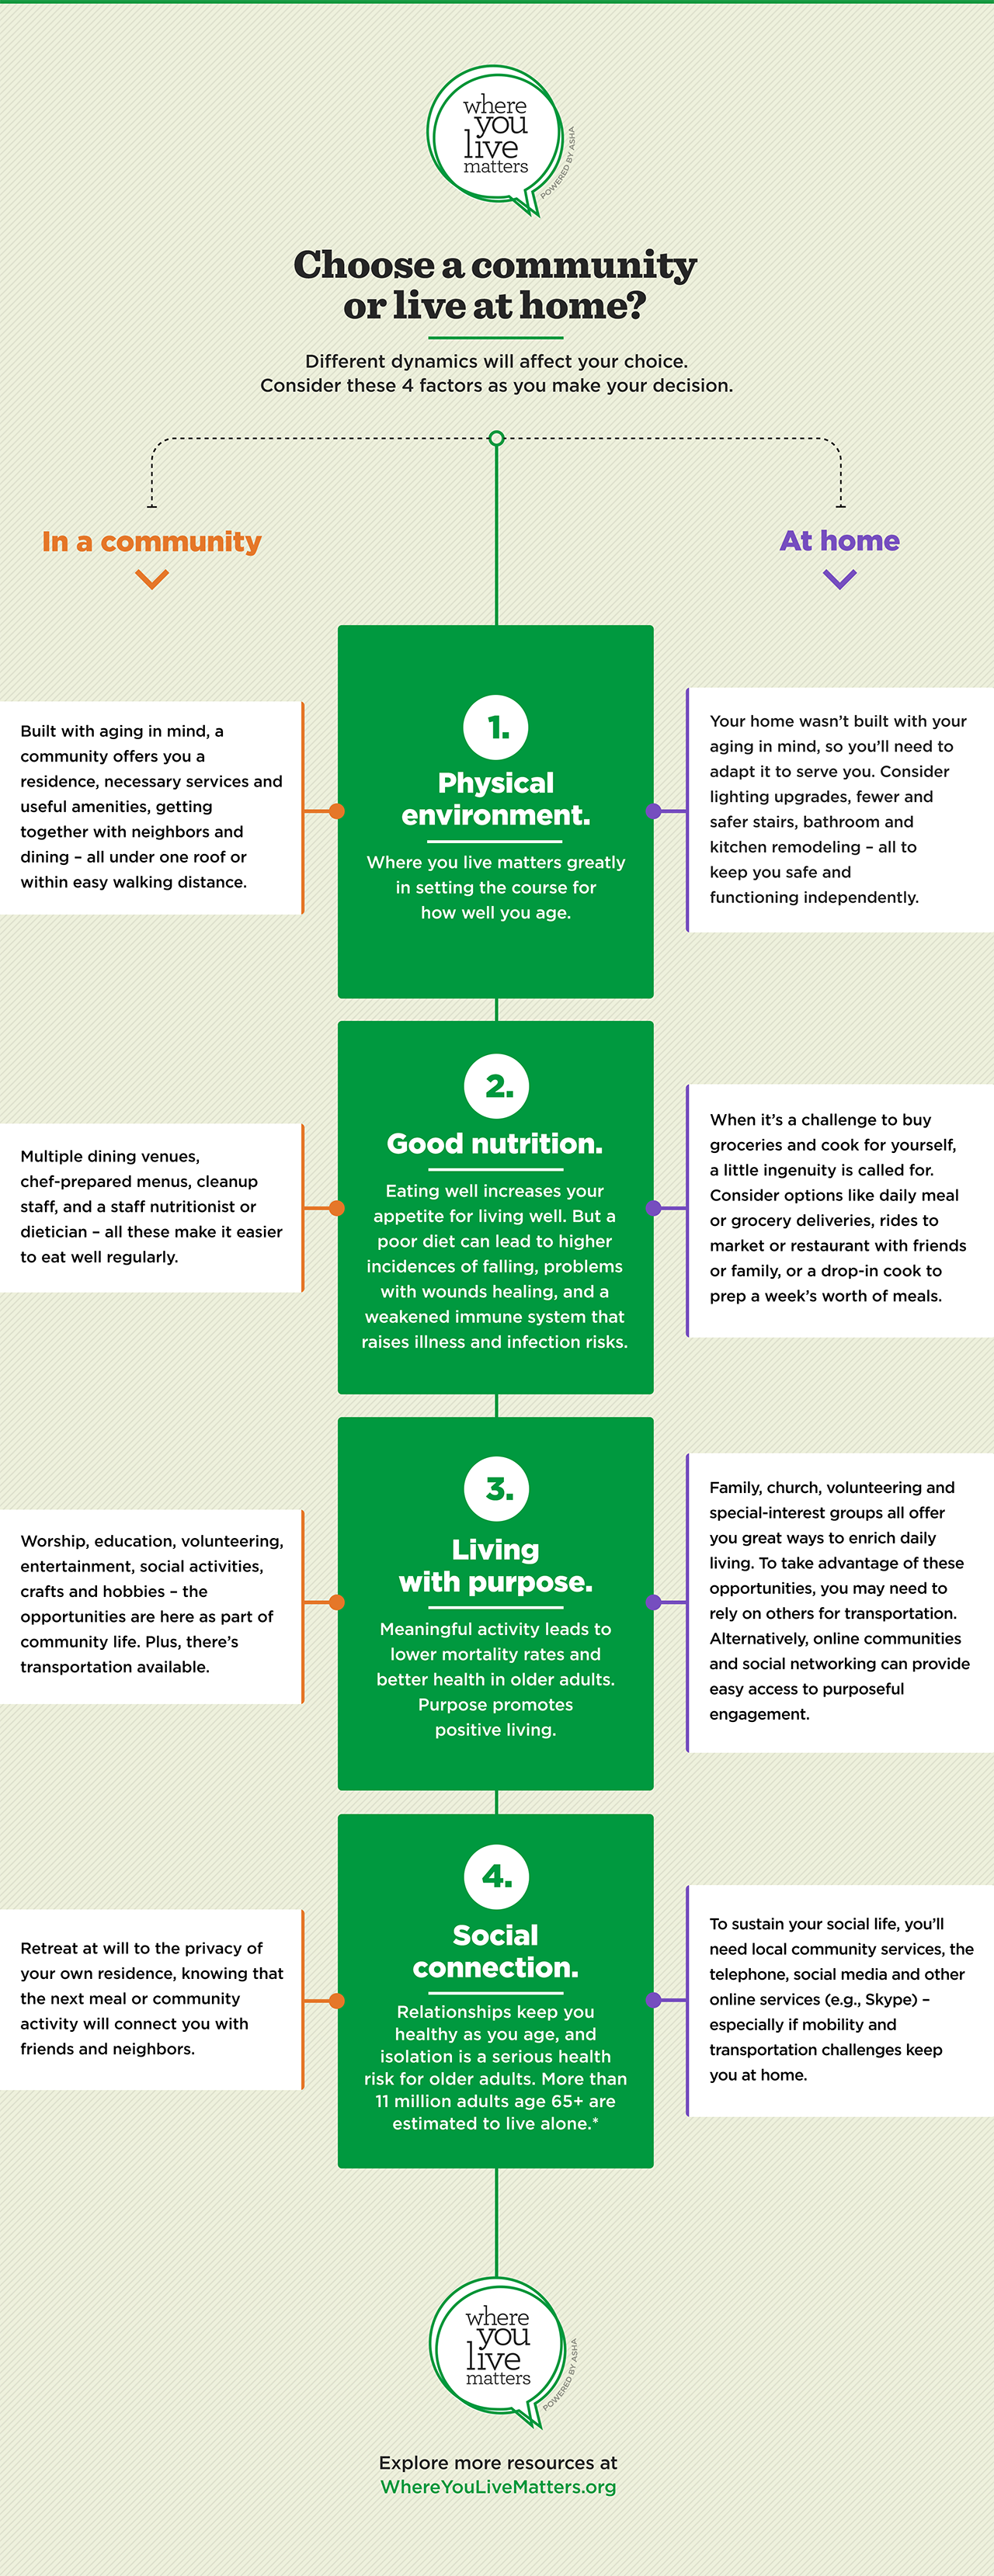 where you live matters infographic comparing living options environment nutrition purpose connection